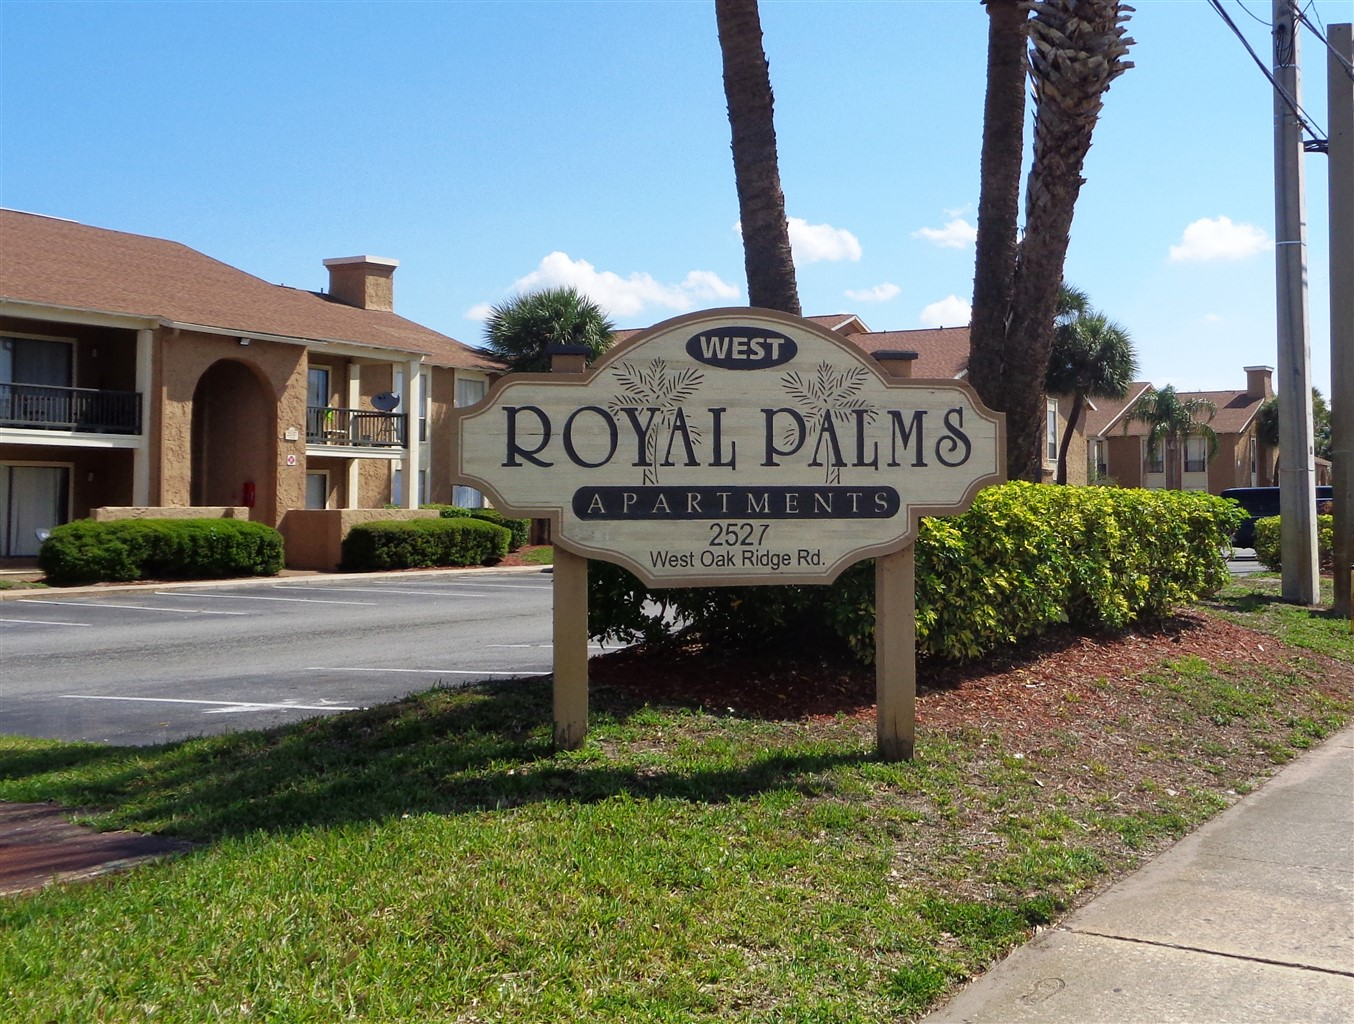 Royal Palms East And West for rent